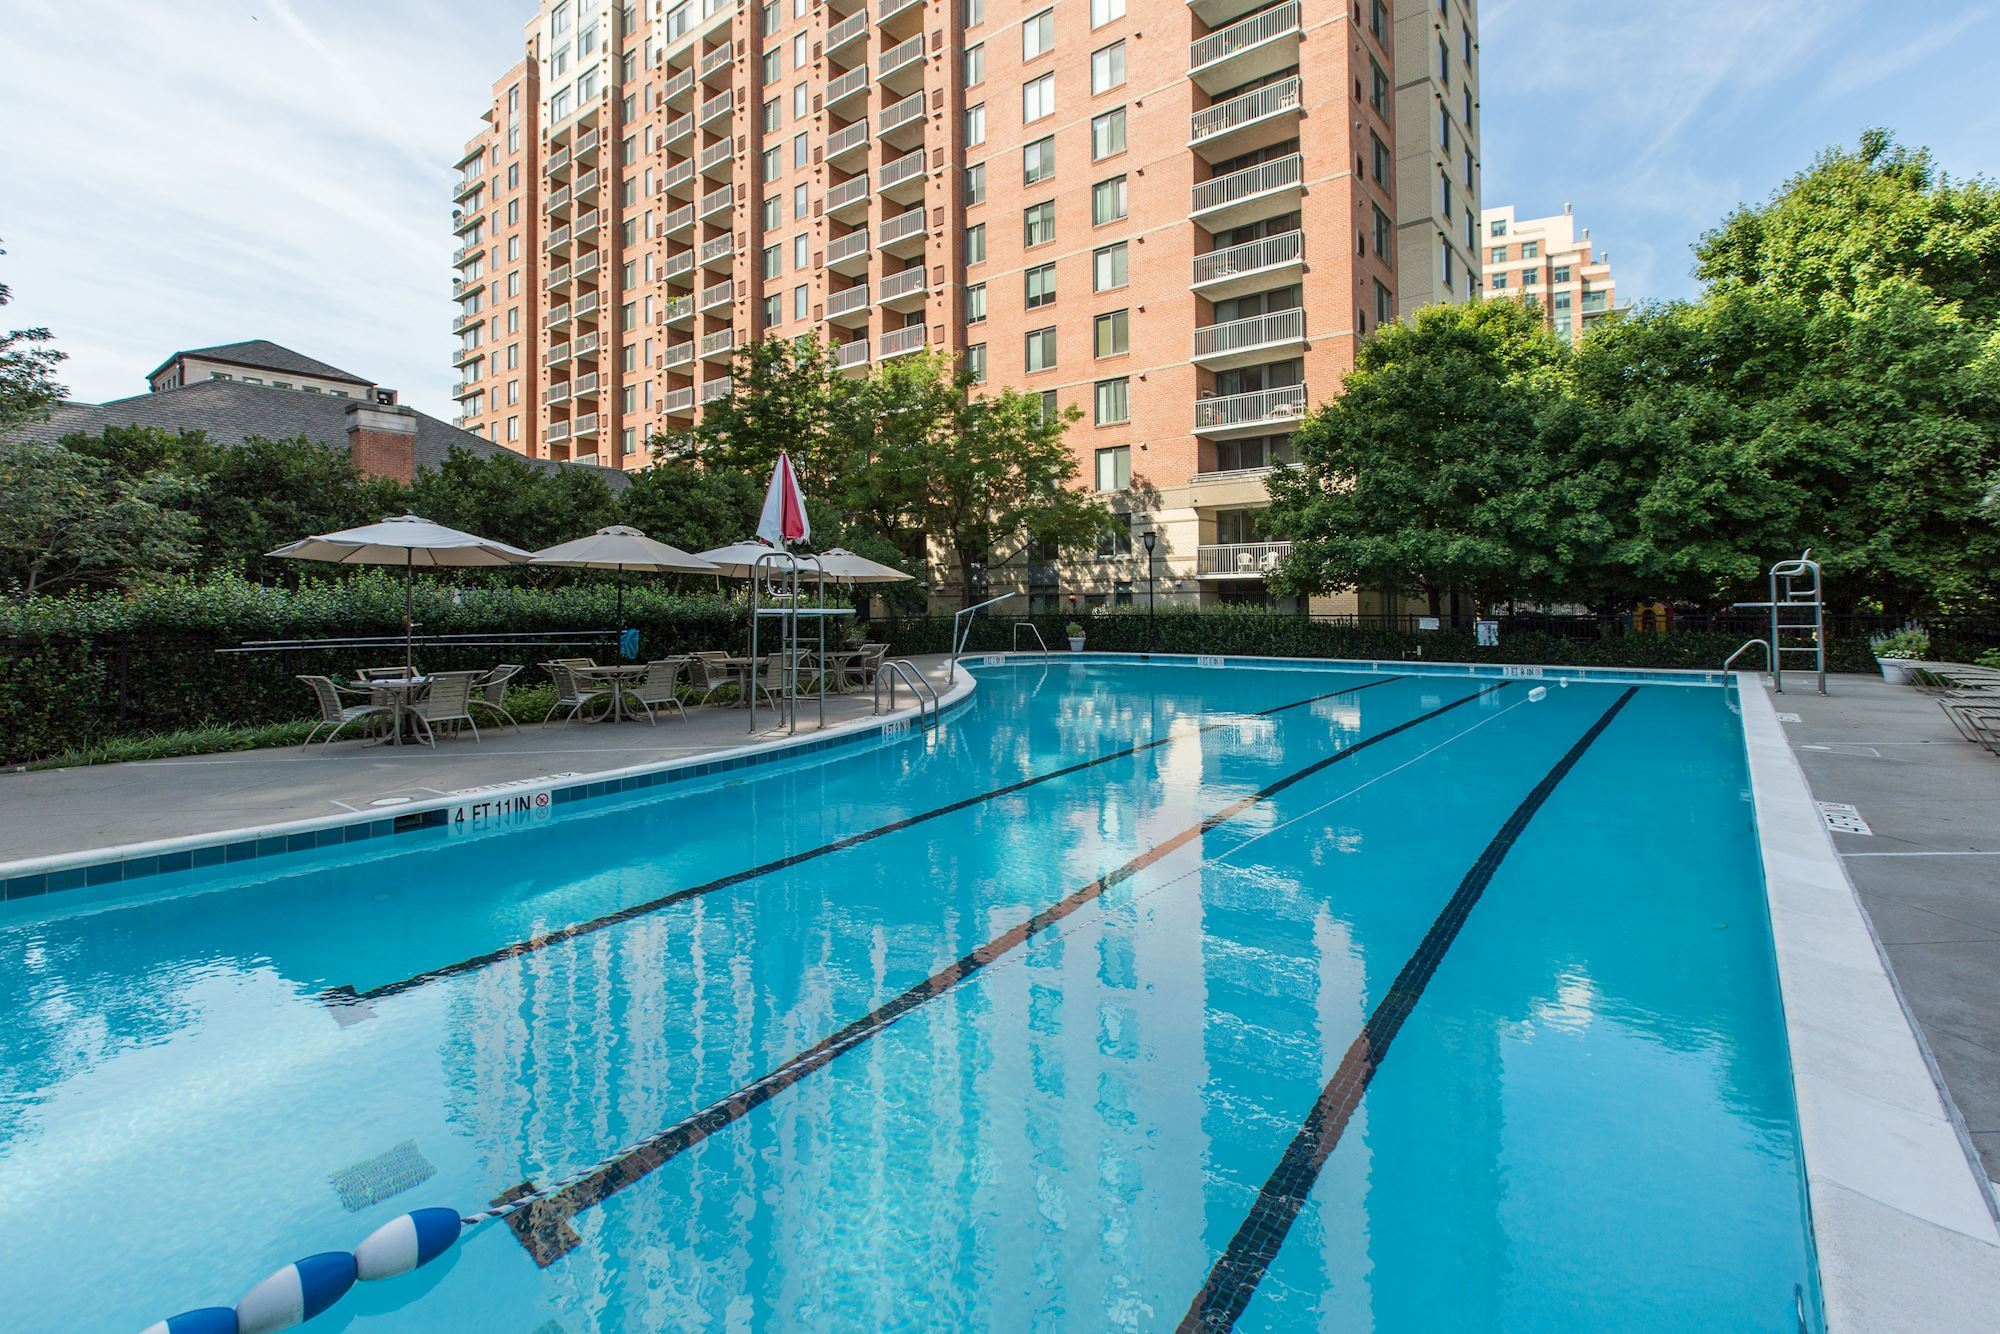 NEW LISTING: Luxury High Rise Condo in Bethesda